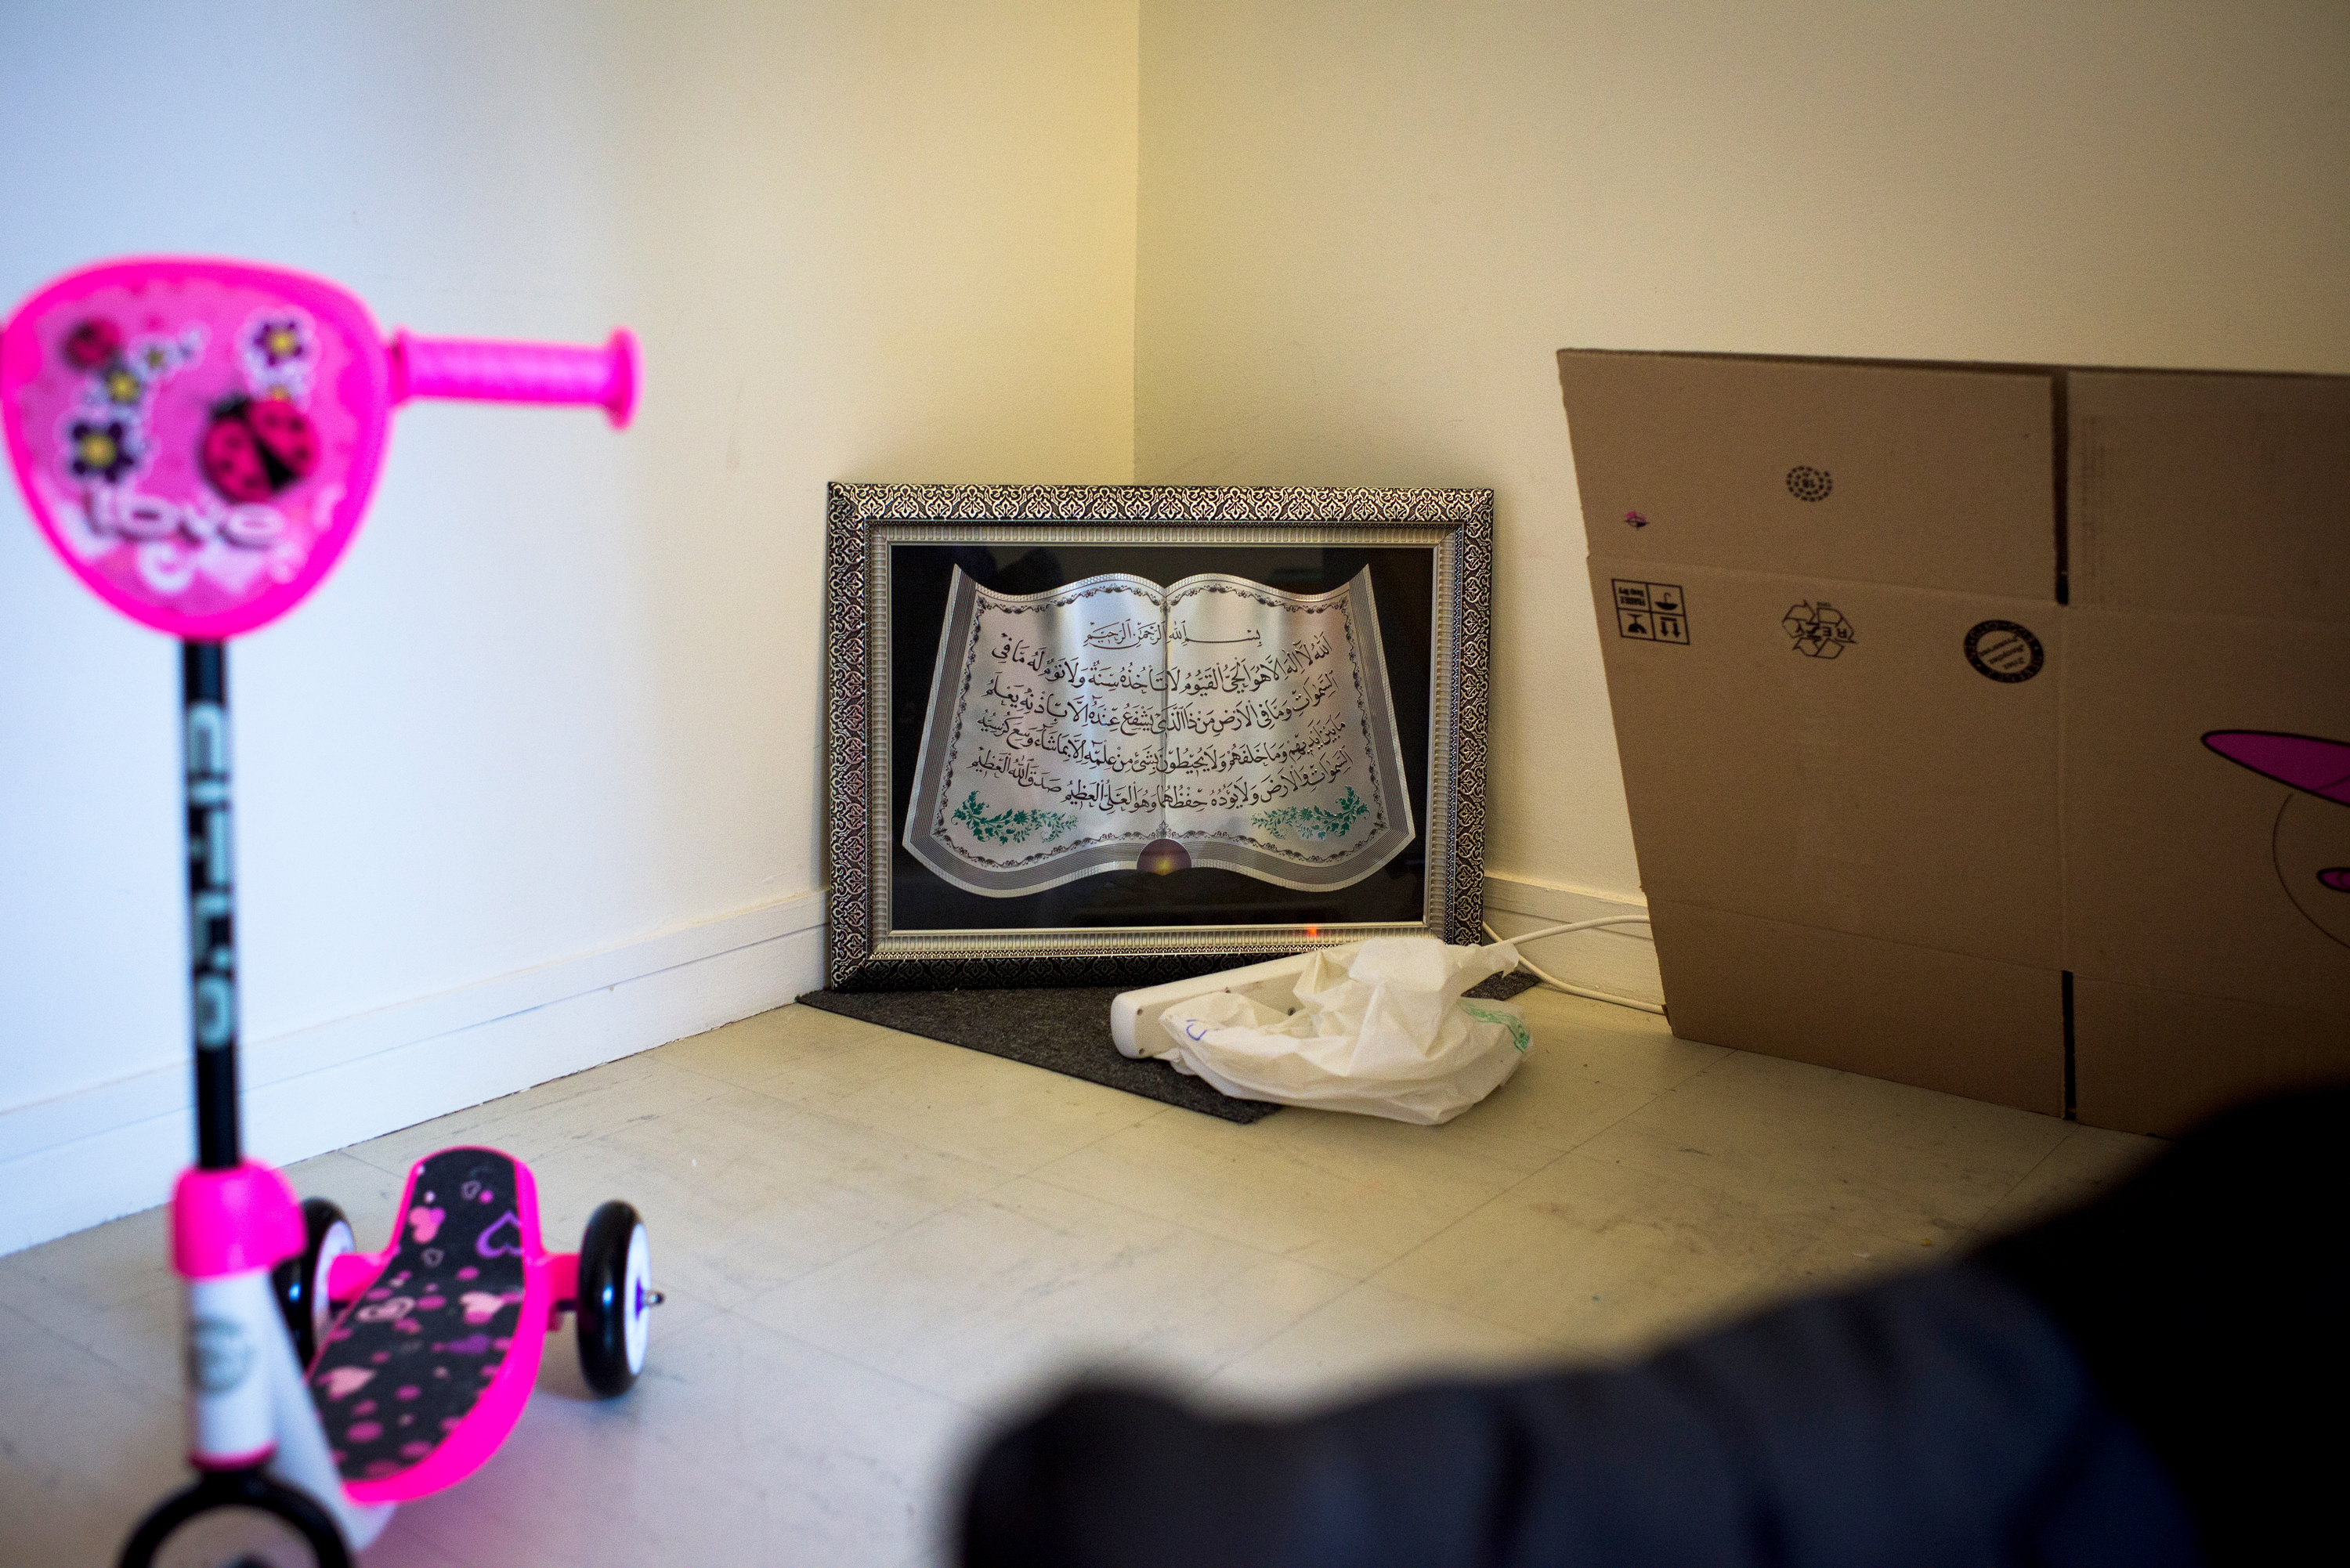 A framed verse of the Quran is seen at the home of the brother of Ismael Difallah on February 10, 2019 in Saint-Michel-sur-Orge, France. Difallah was helping his brother, Nasserdine Difallah move.(Pete Kiehart for The Intercept)